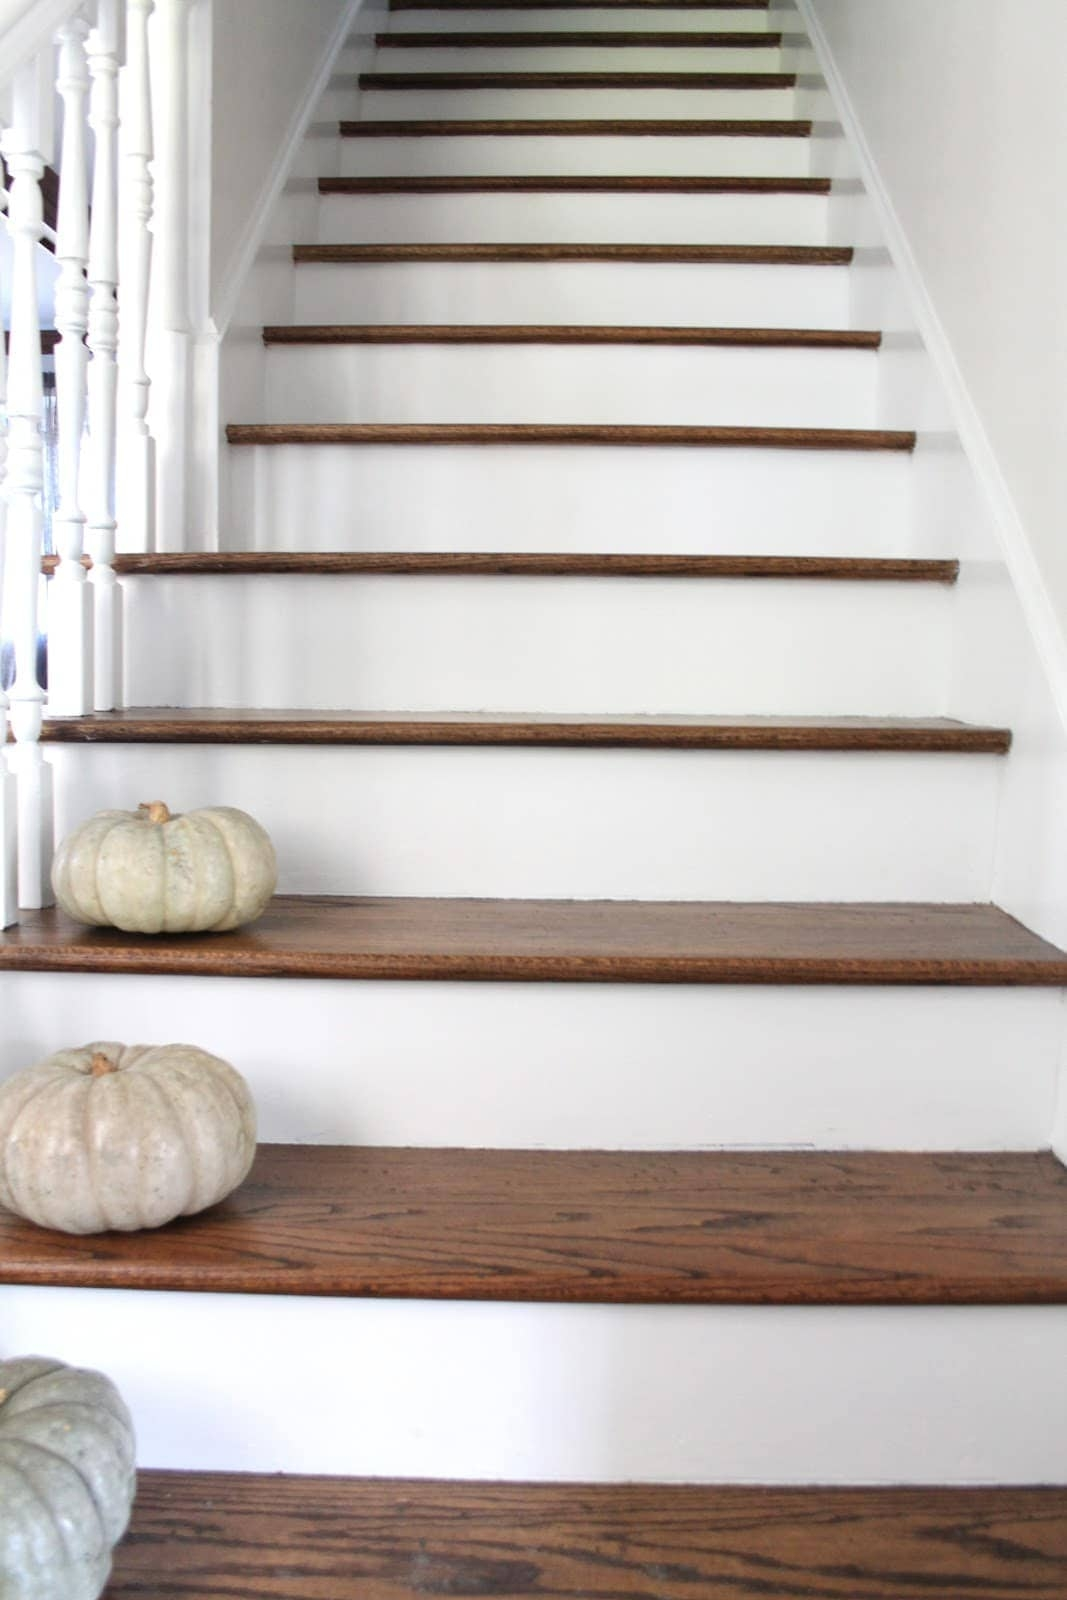 Stair Makeover Treads And Risers Exposed | Dark Wood Stairs With White Risers | Wall | Beautiful Wood | Wooden | Modern | Floor